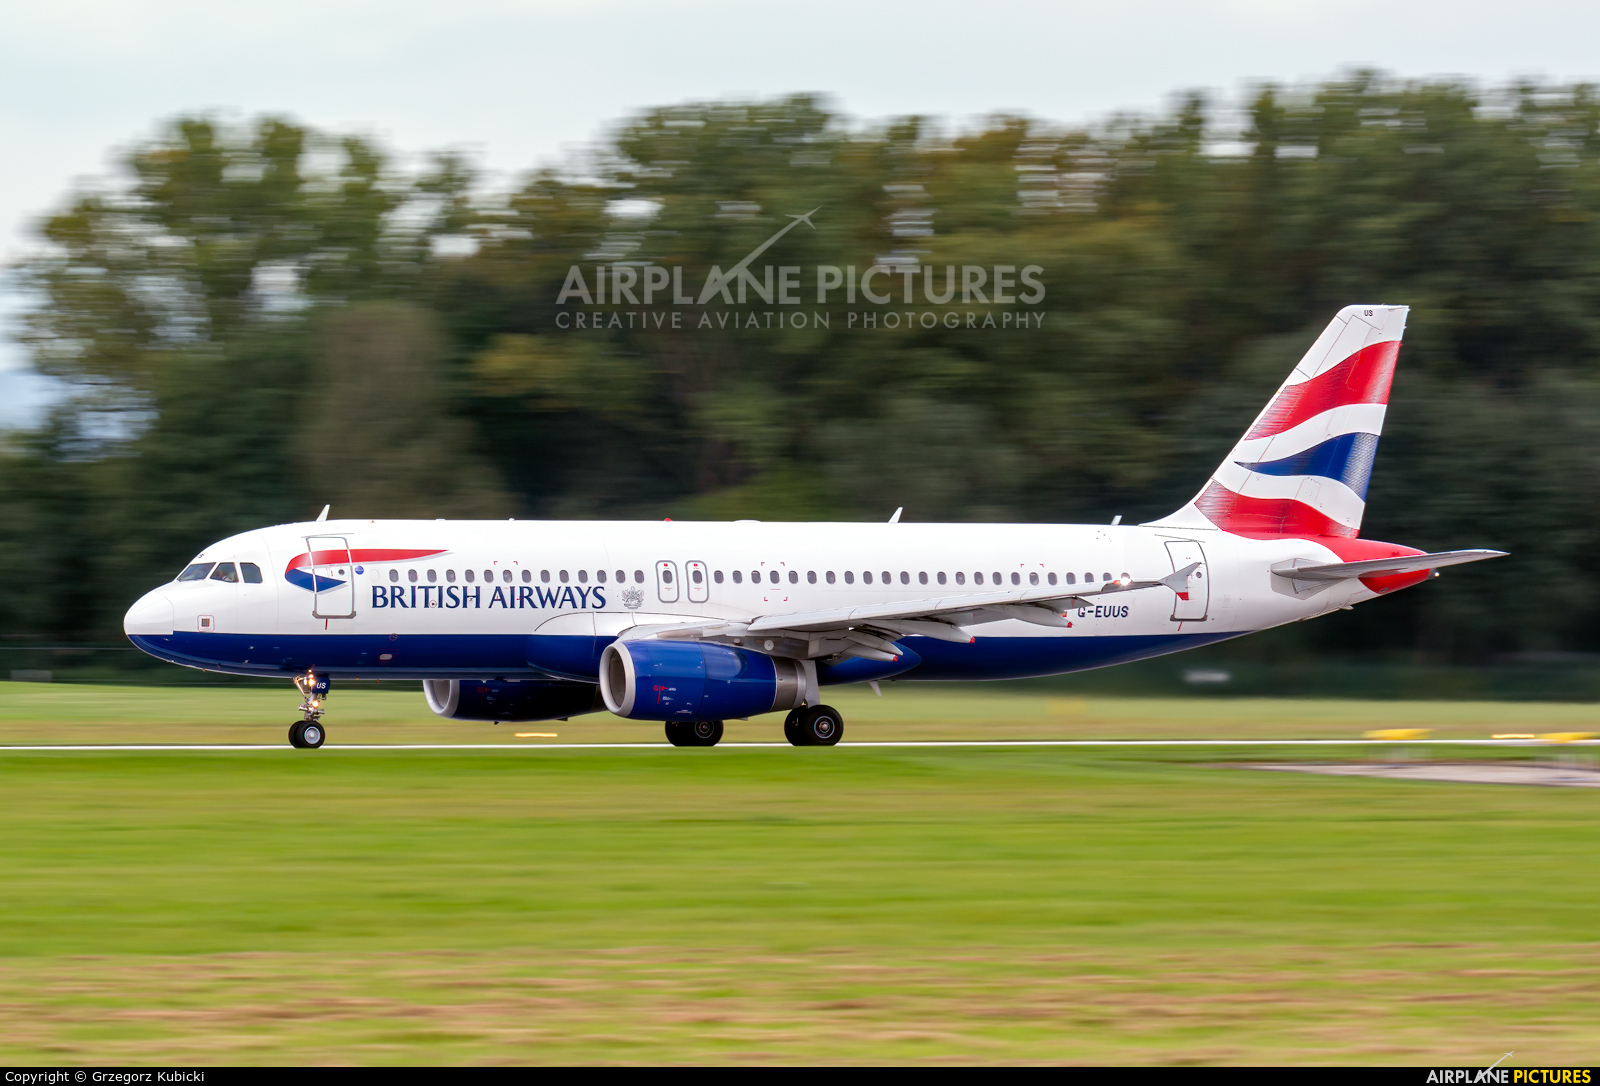 British Airways G-EUUS aircraft at Kraków - John Paul II Intl